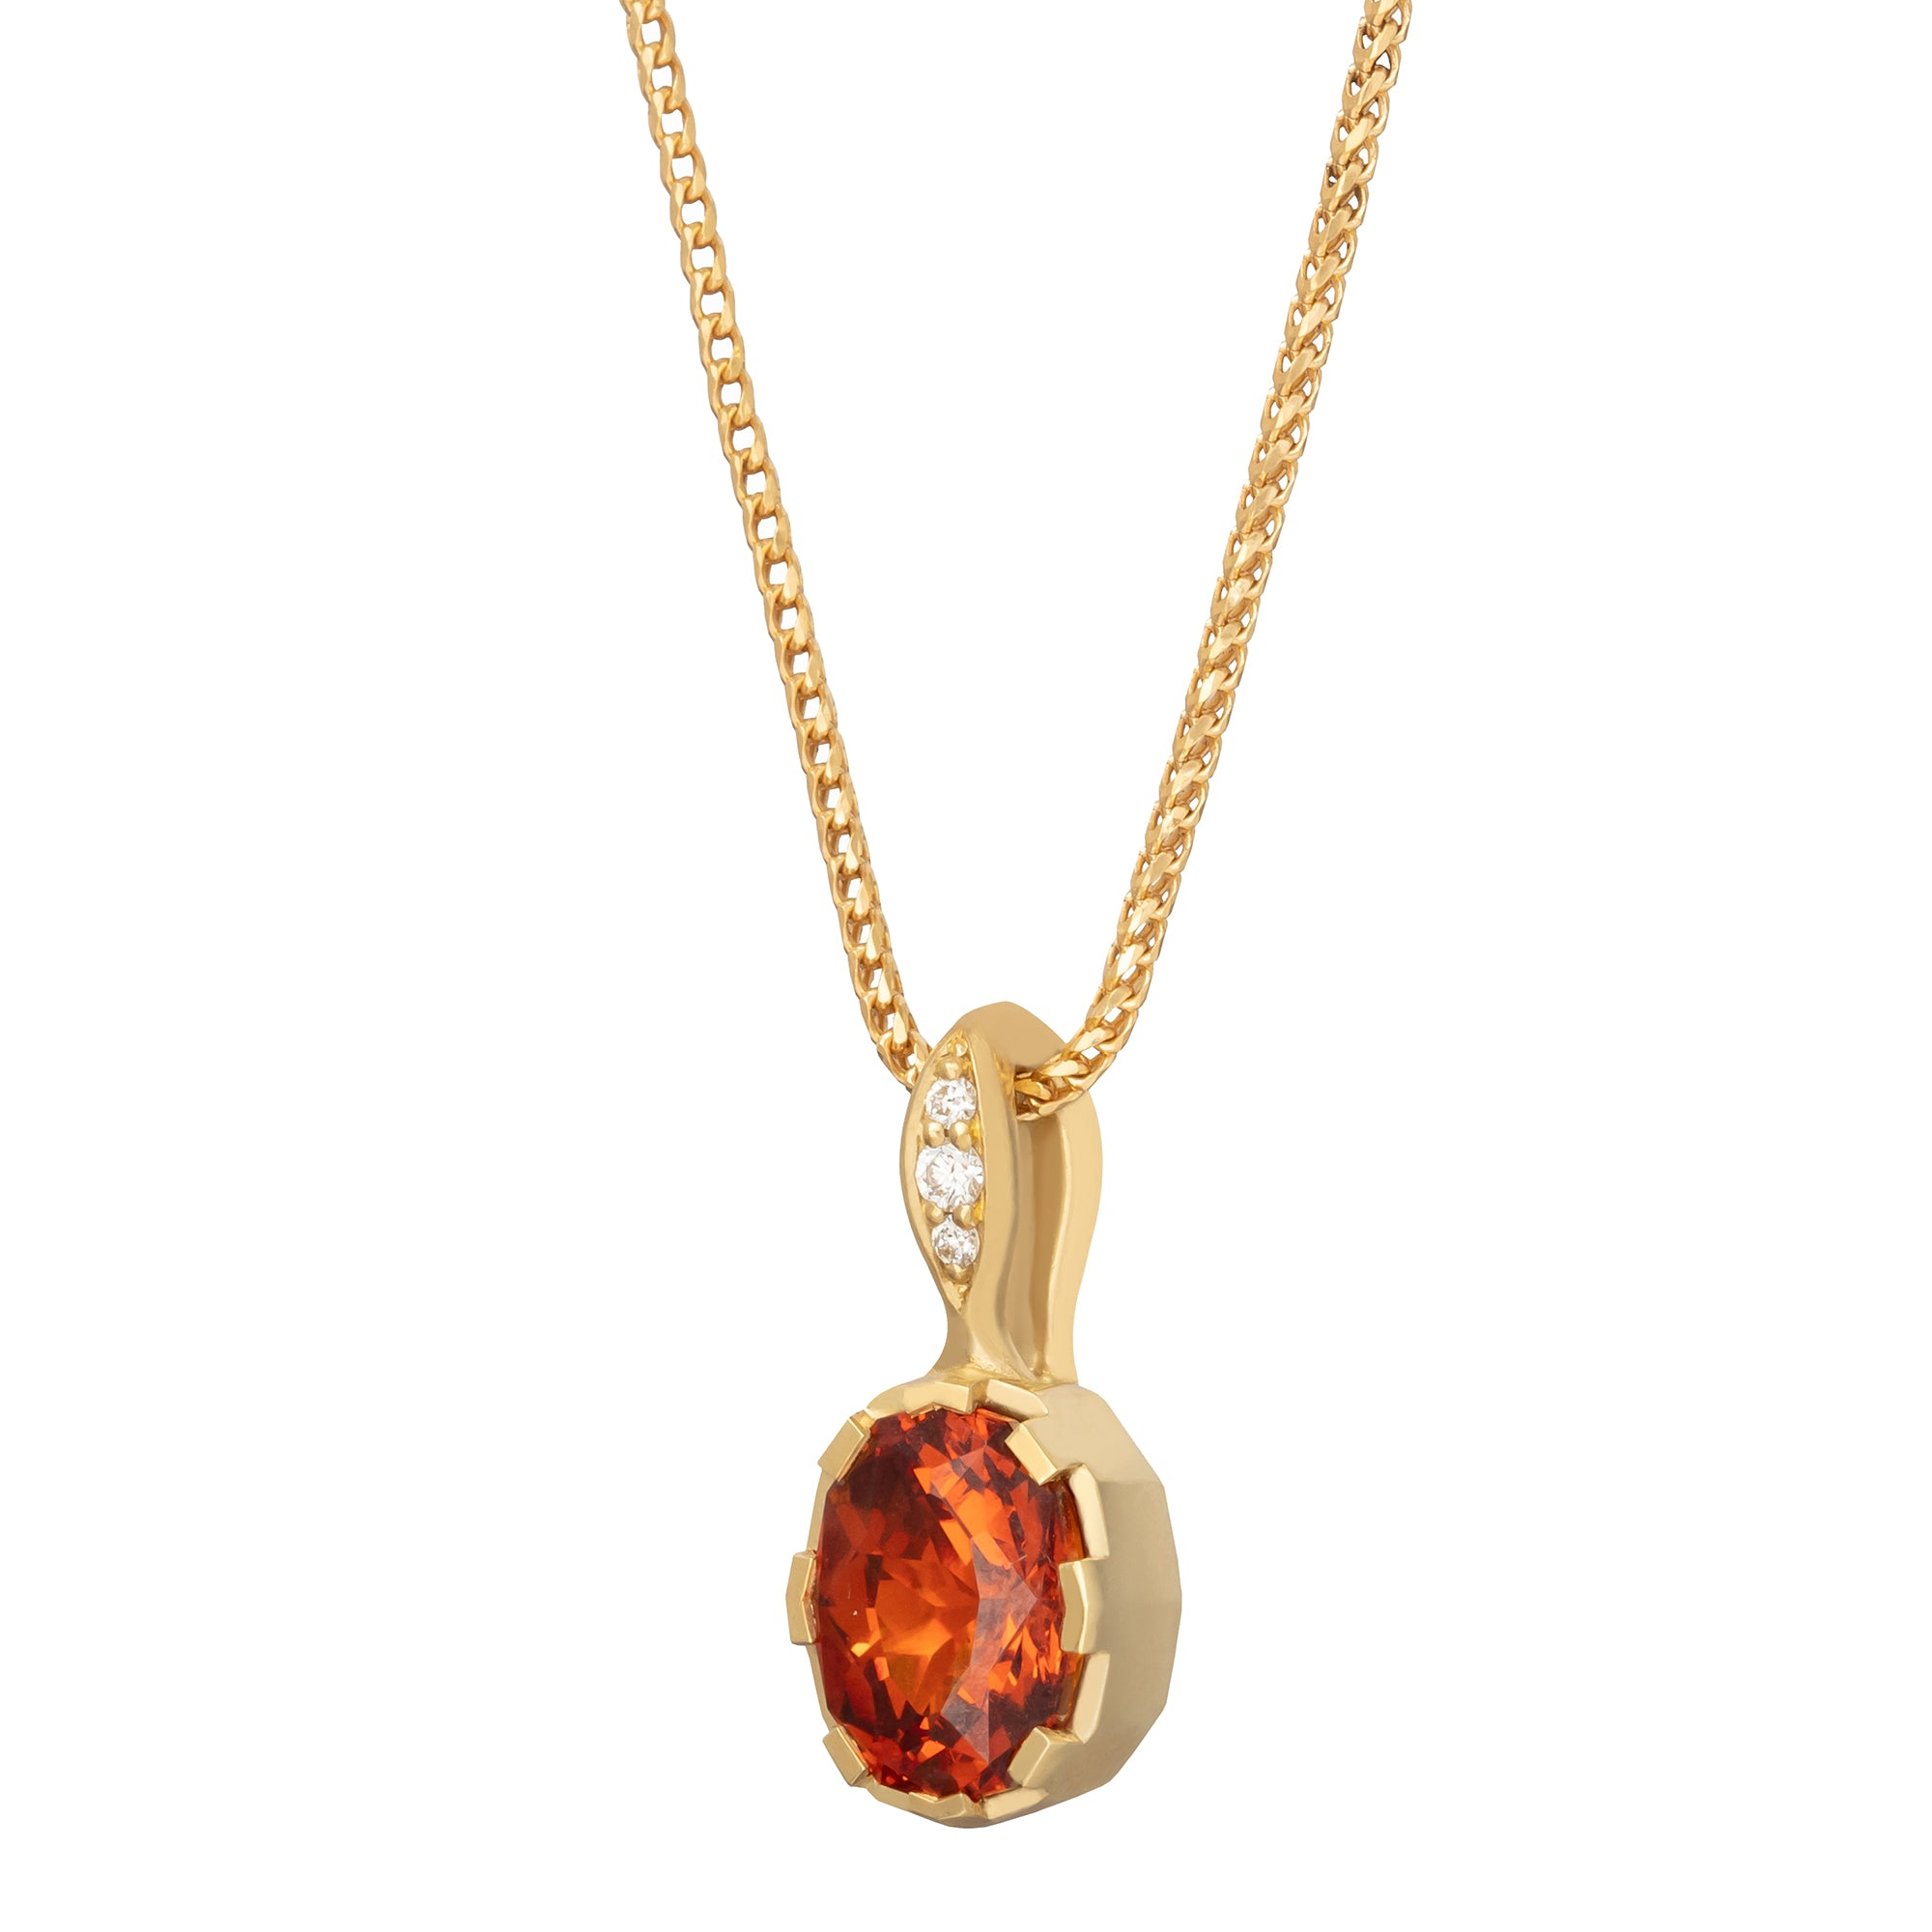 Spessartite Garnet Modern Oval Pendant Necklace - ANDY LIF Jewelry - Necklaces | Broken English Jewelry